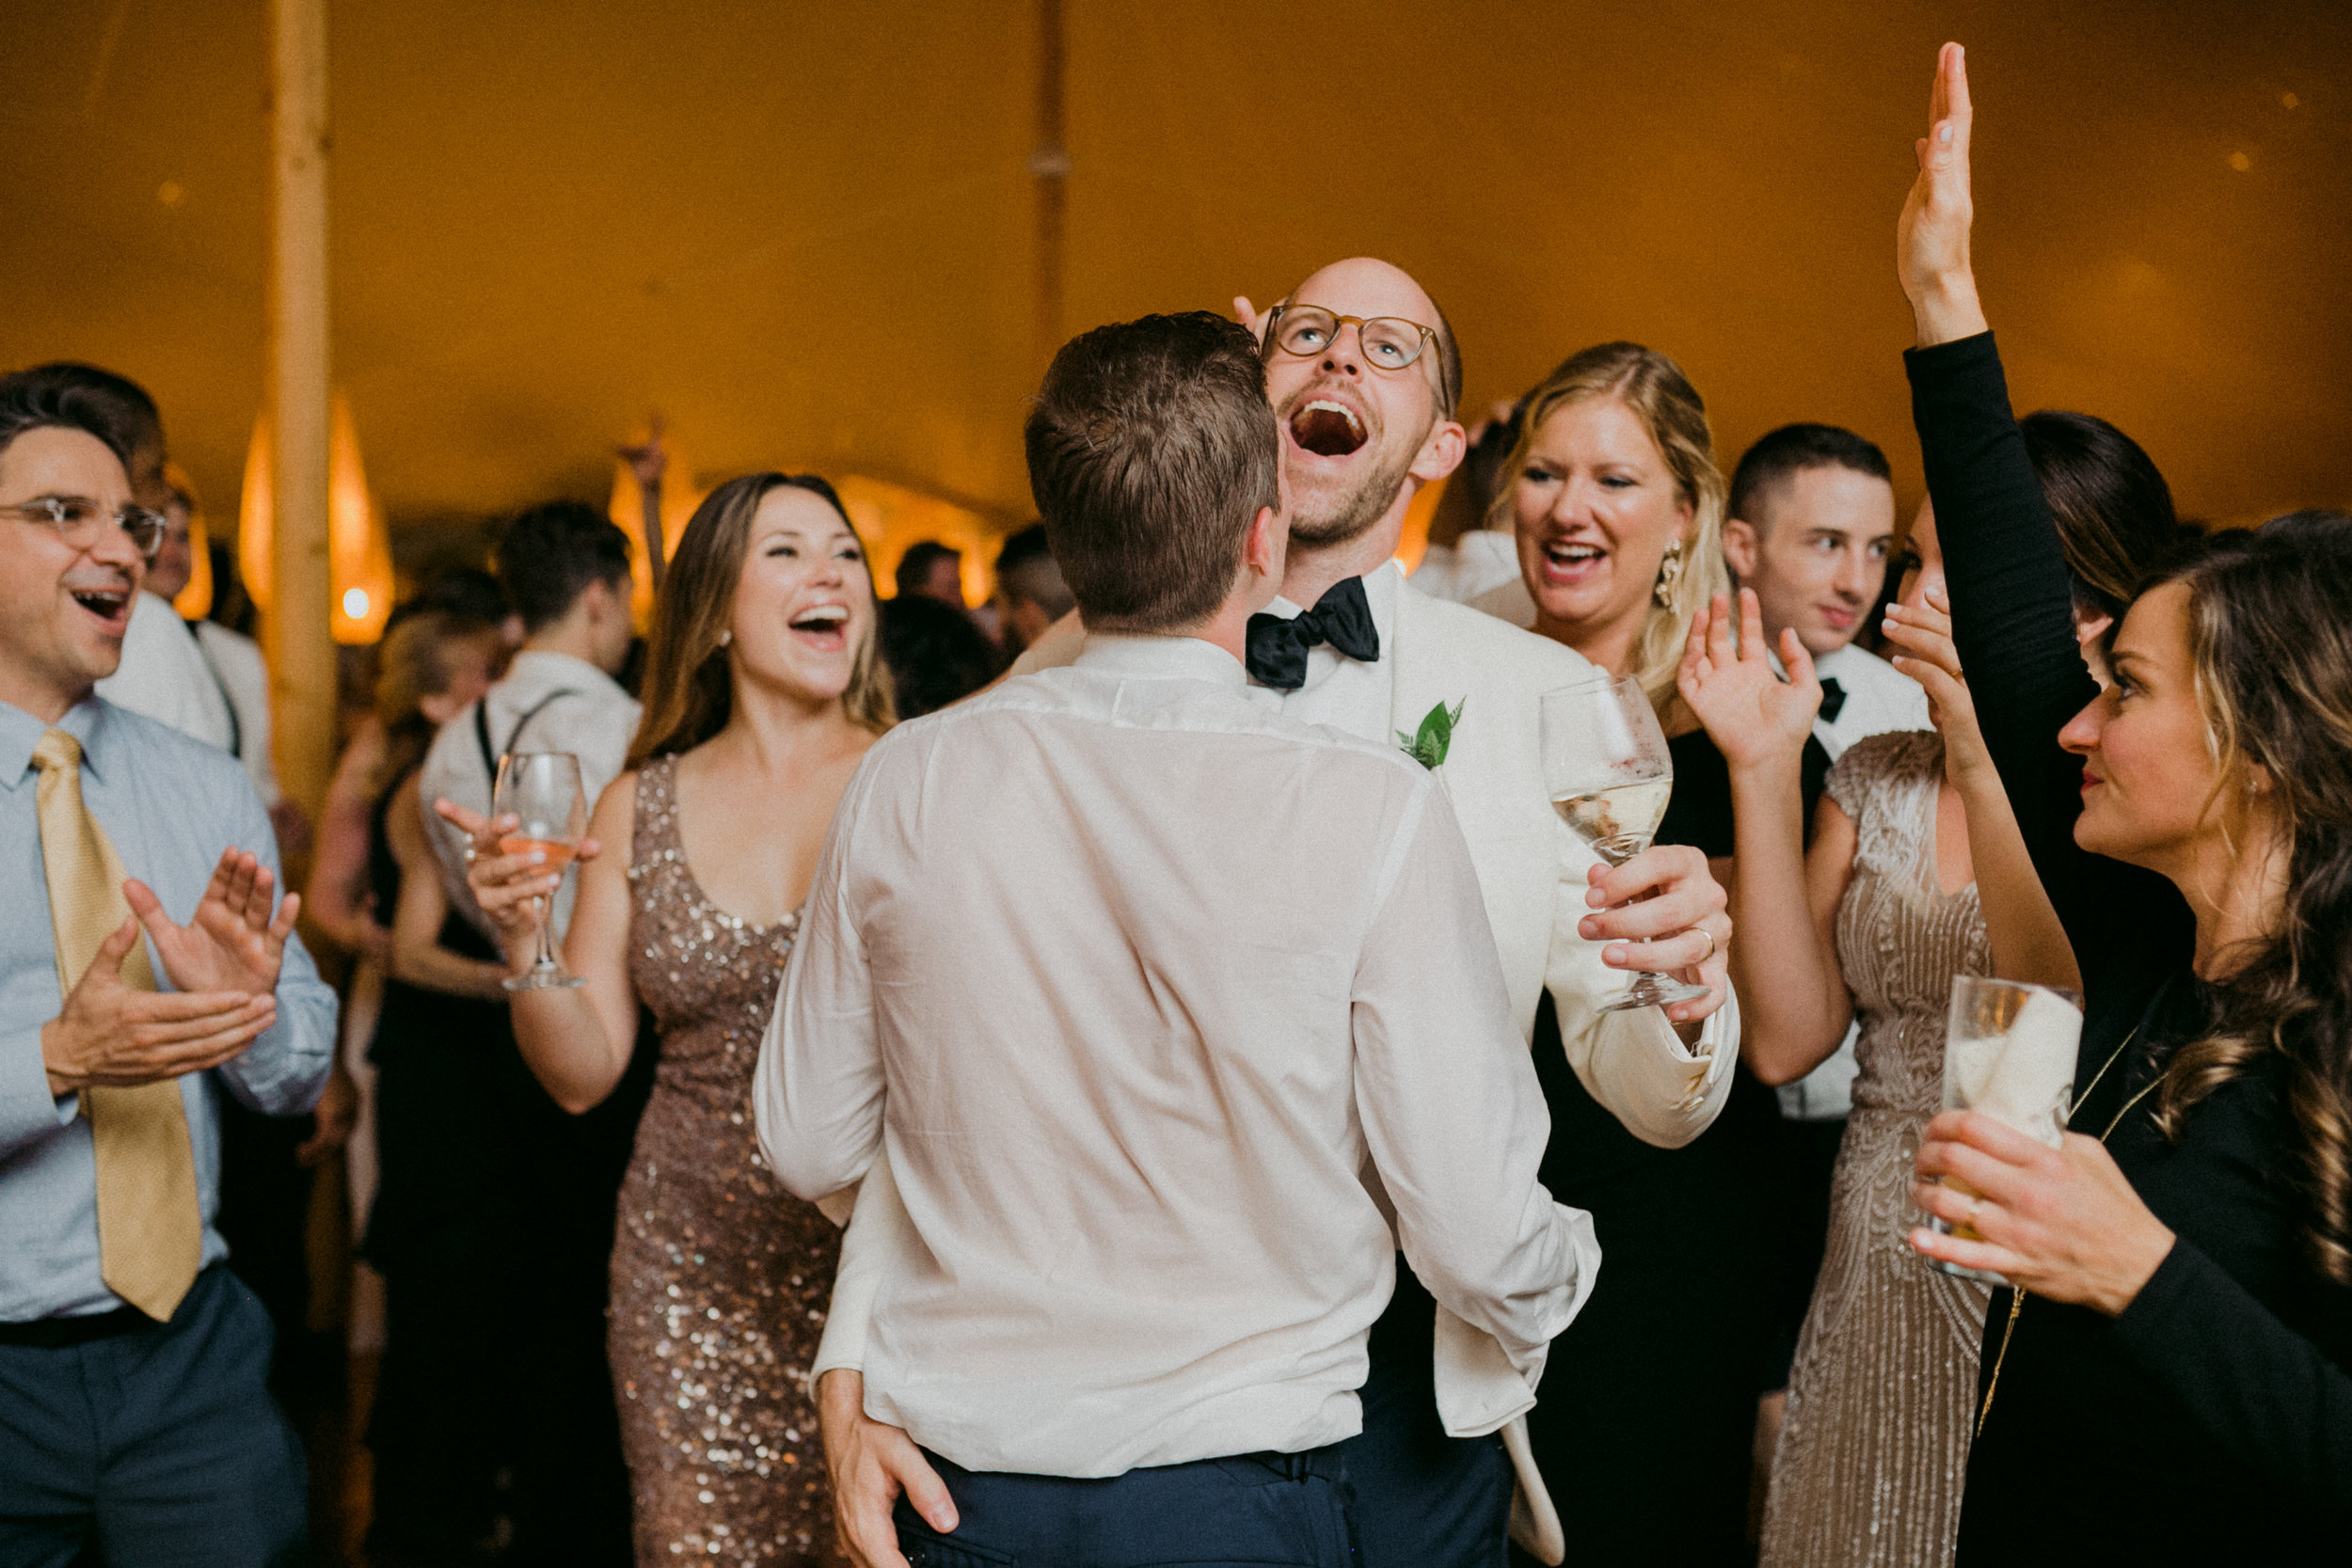 Same Sex Wedding in Provincetown, MA. Destination wedding planned by Nicole Simeral. Coastal Chic Wedding, Travel Wedding, Sperry Sailcloth Tent Wedding, grooms, dancing, candle light, warm lighting.